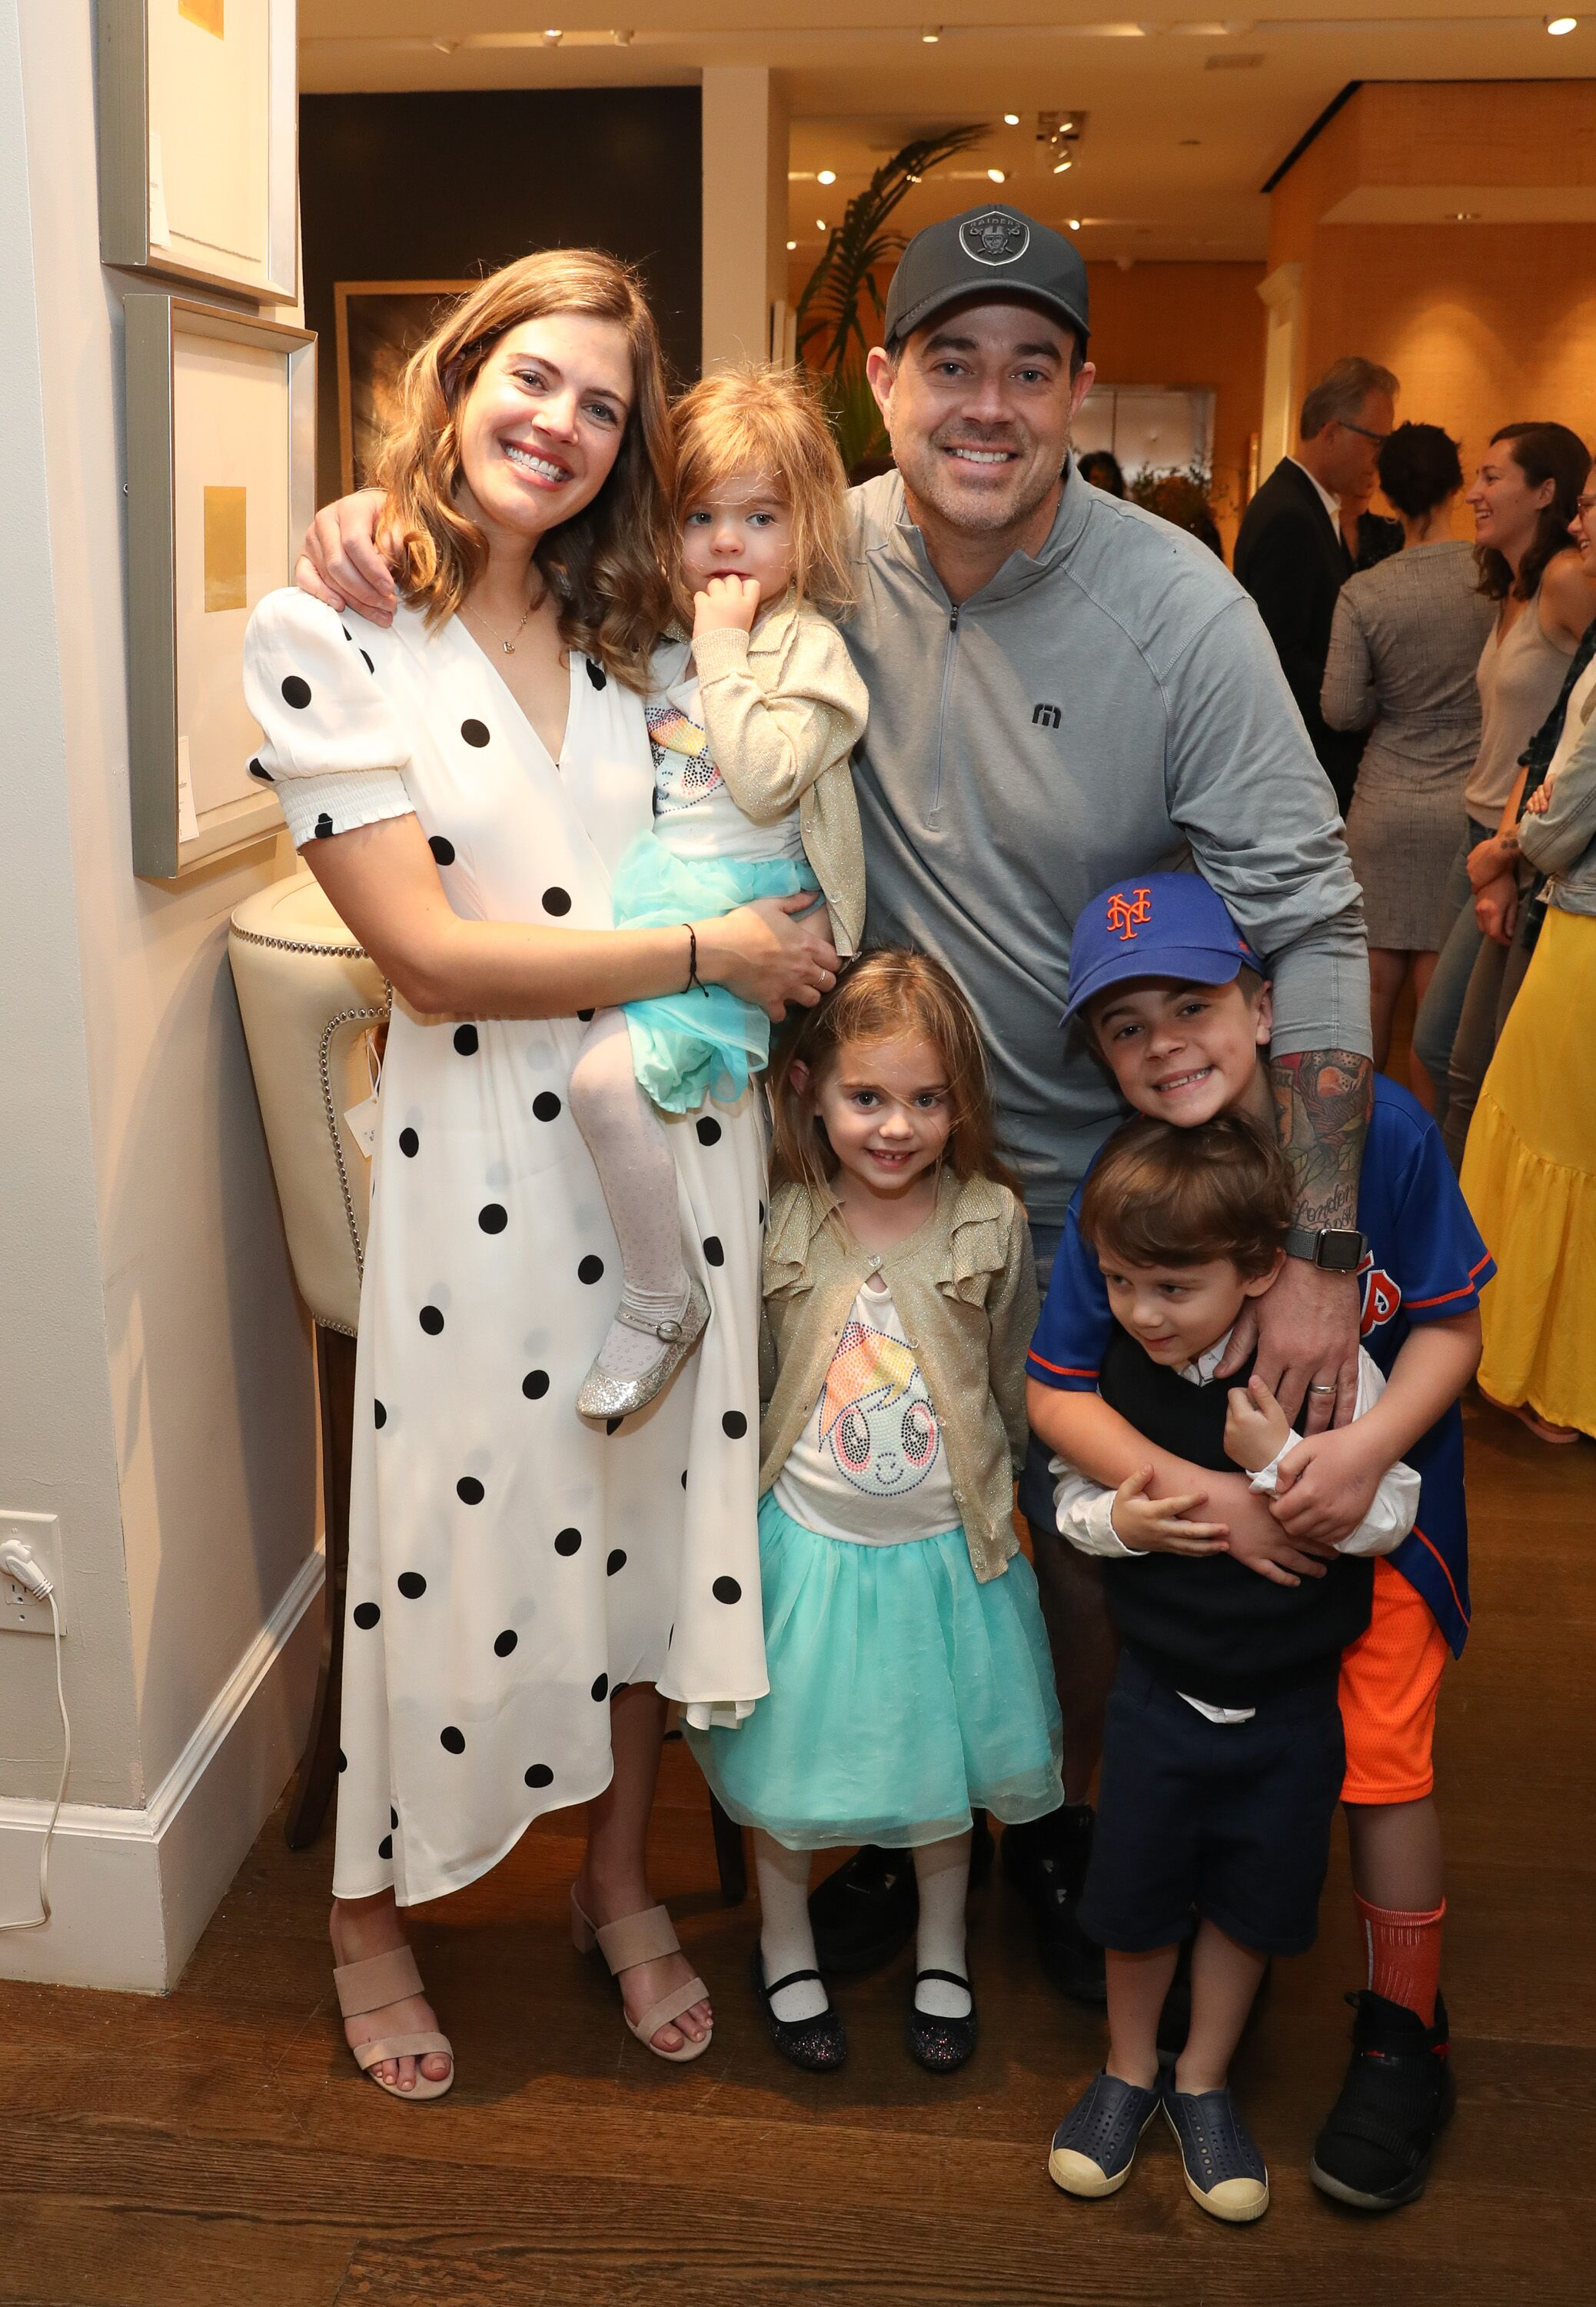 """Siri Daly and Carson Daly, and family, attend """"Siriously Delicious"""" by Siri Daly book launch event at Williams Sonoma Columbus Circle on April 14, 2018 in New York City. 